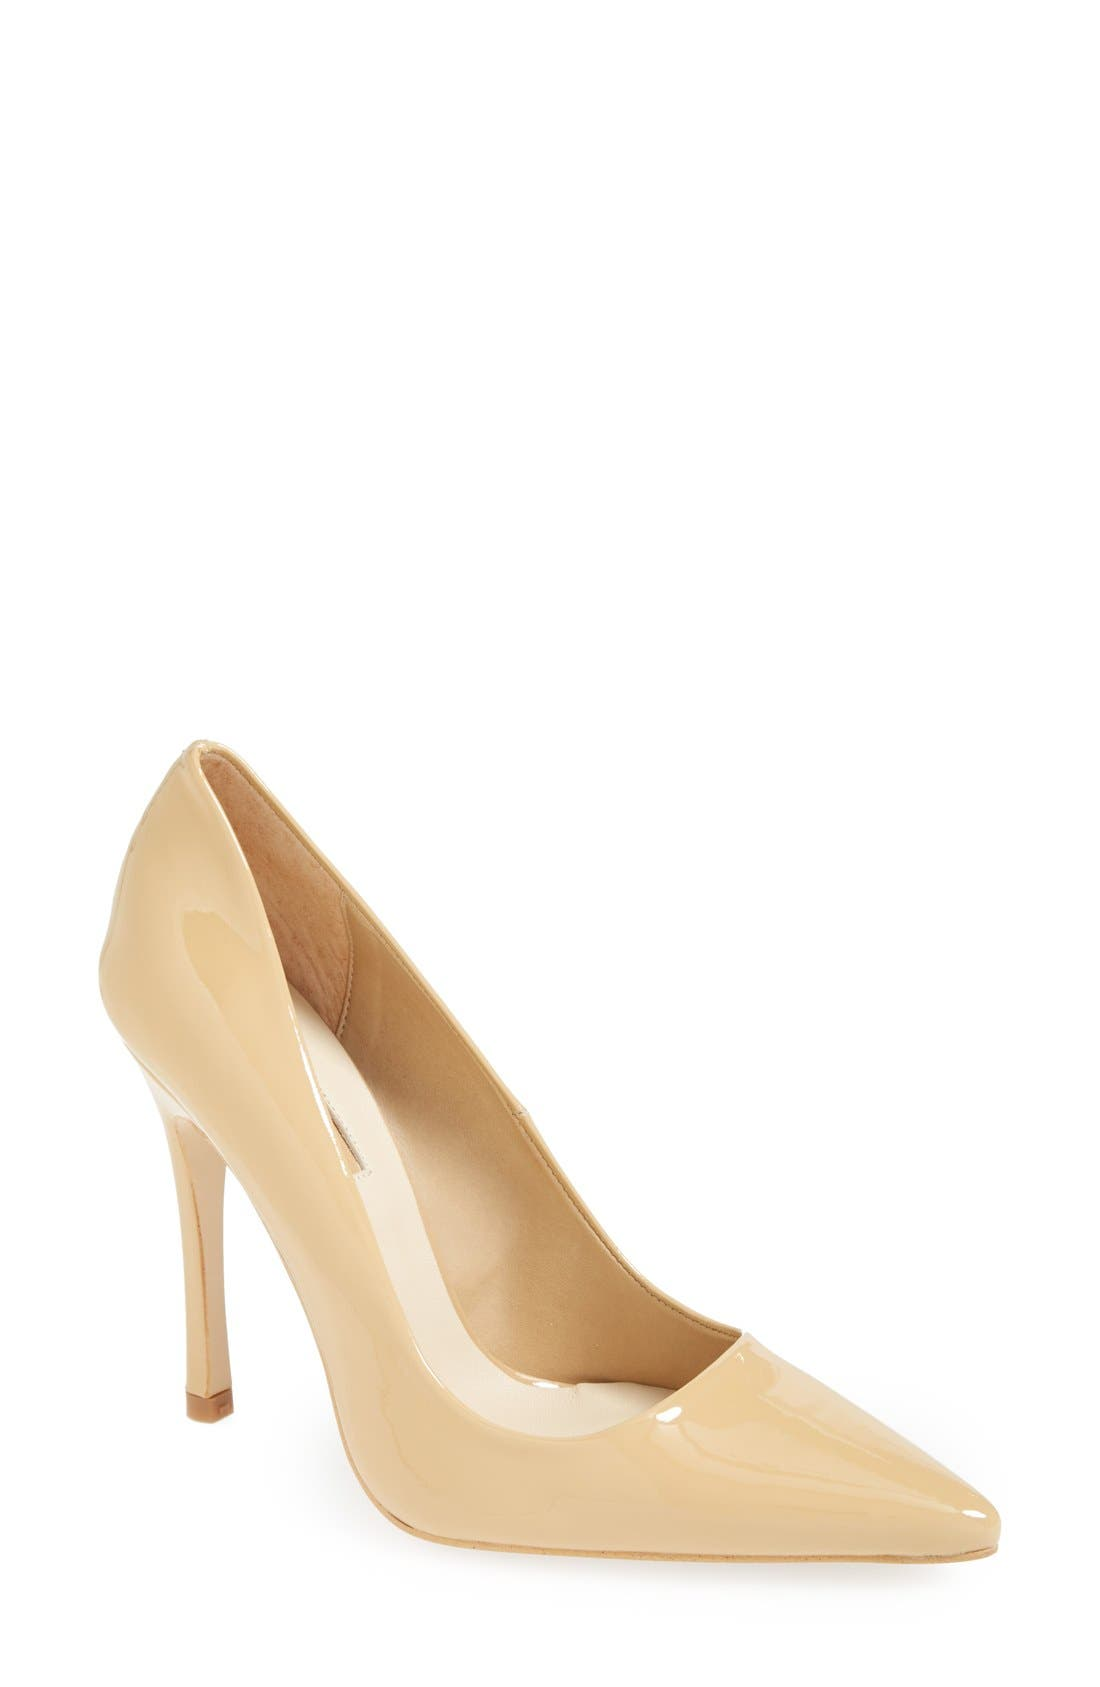 Alternate Image 1 Selected - Topshop 'Gallop' Patent Pointy Toe Pump (Women)